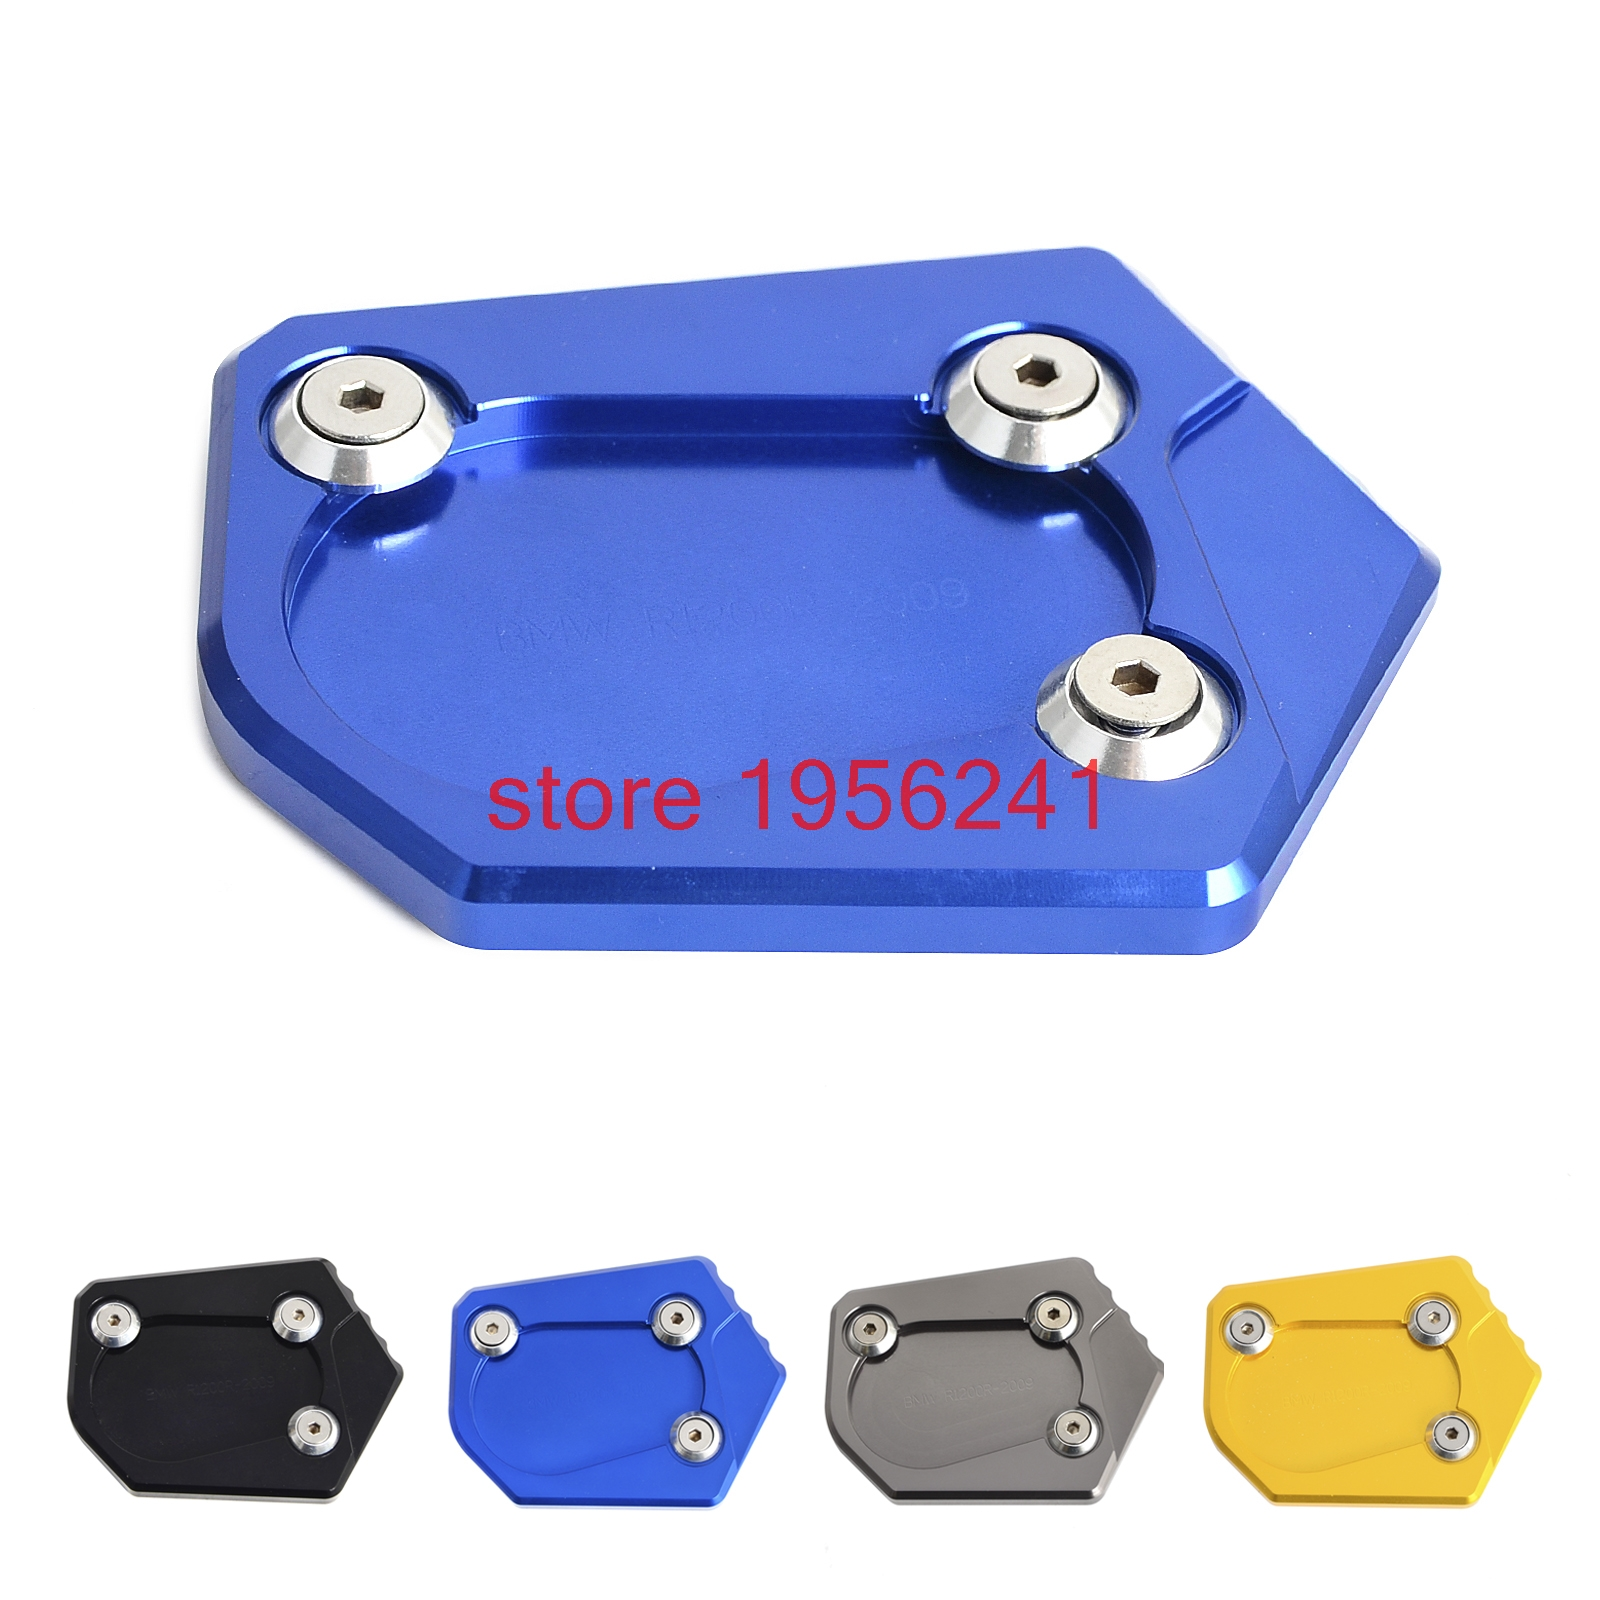 CNC Side Kickstand Stand Extension Plate For BMW R1200R 06-14 R1200RT 05-13 R1200ST 03-07 R900 RT 2009 2010 R nineT 2014 2015 2x yongnuo yn600ex rt yn e3 rt master flash speedlite for canon rt radio trigger system st e3 rt 600ex rt 5d3 7d 6d 70d 60d 5d